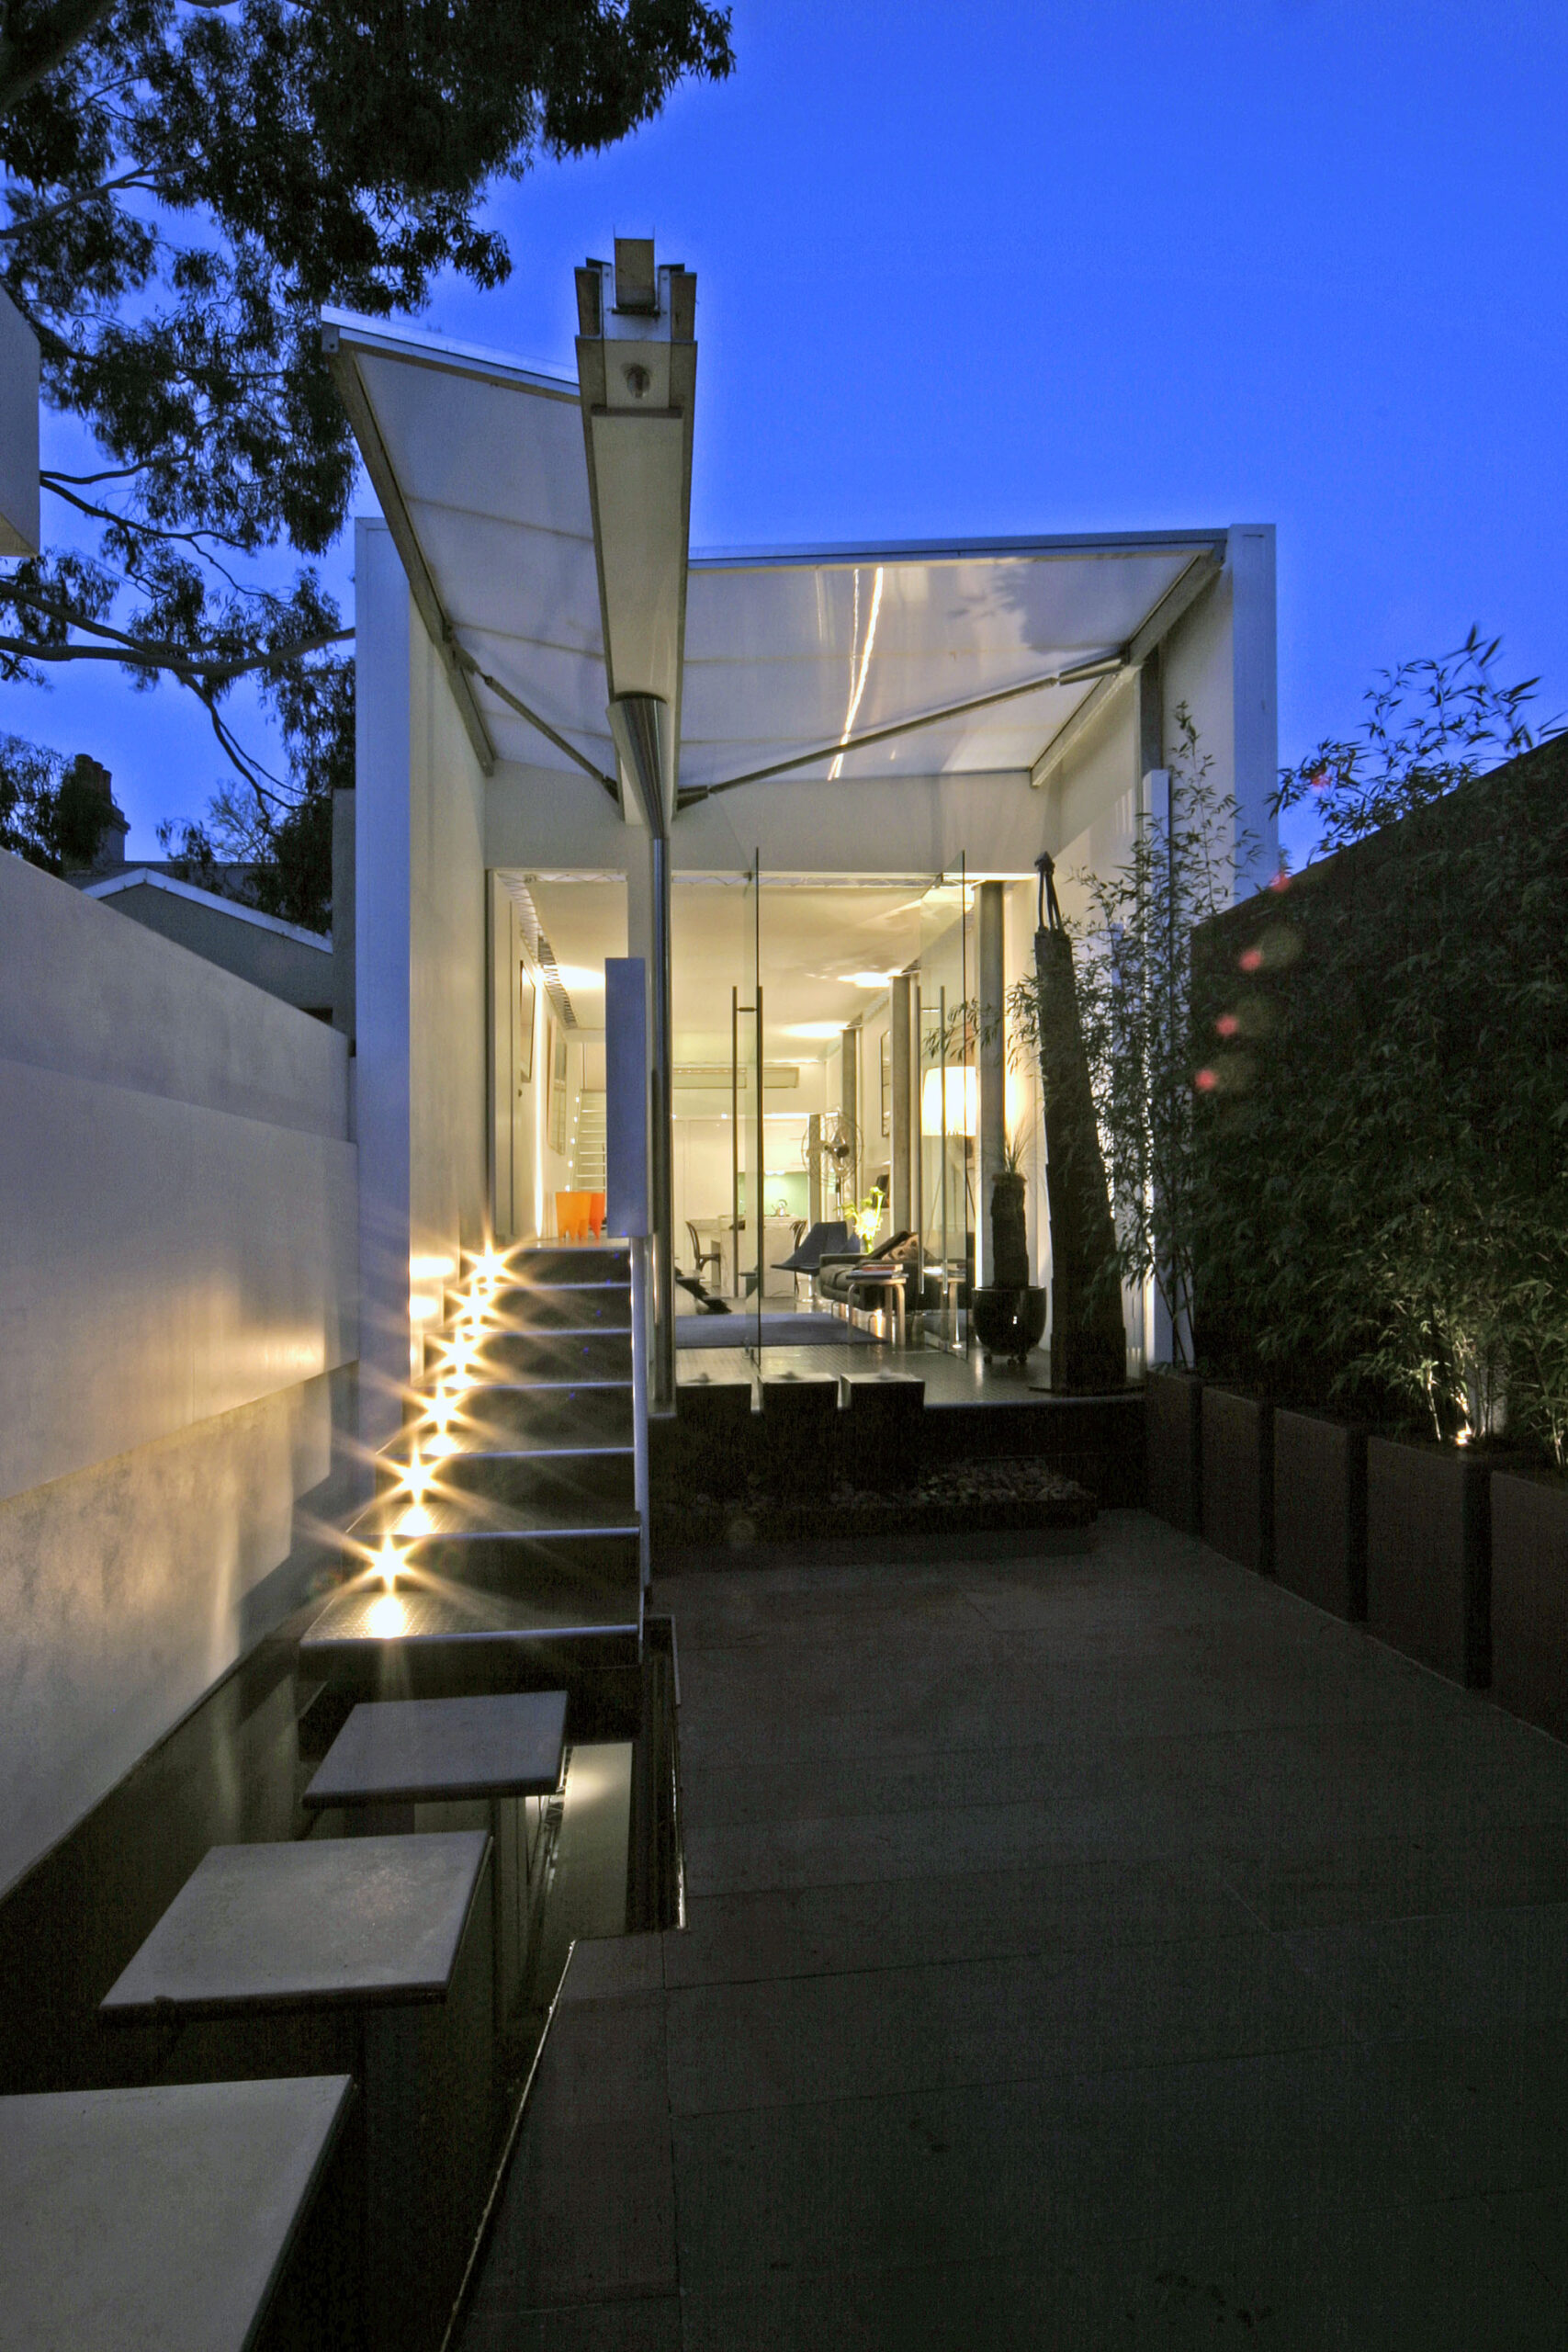 Architecturally designed house with Boxspan roof frame